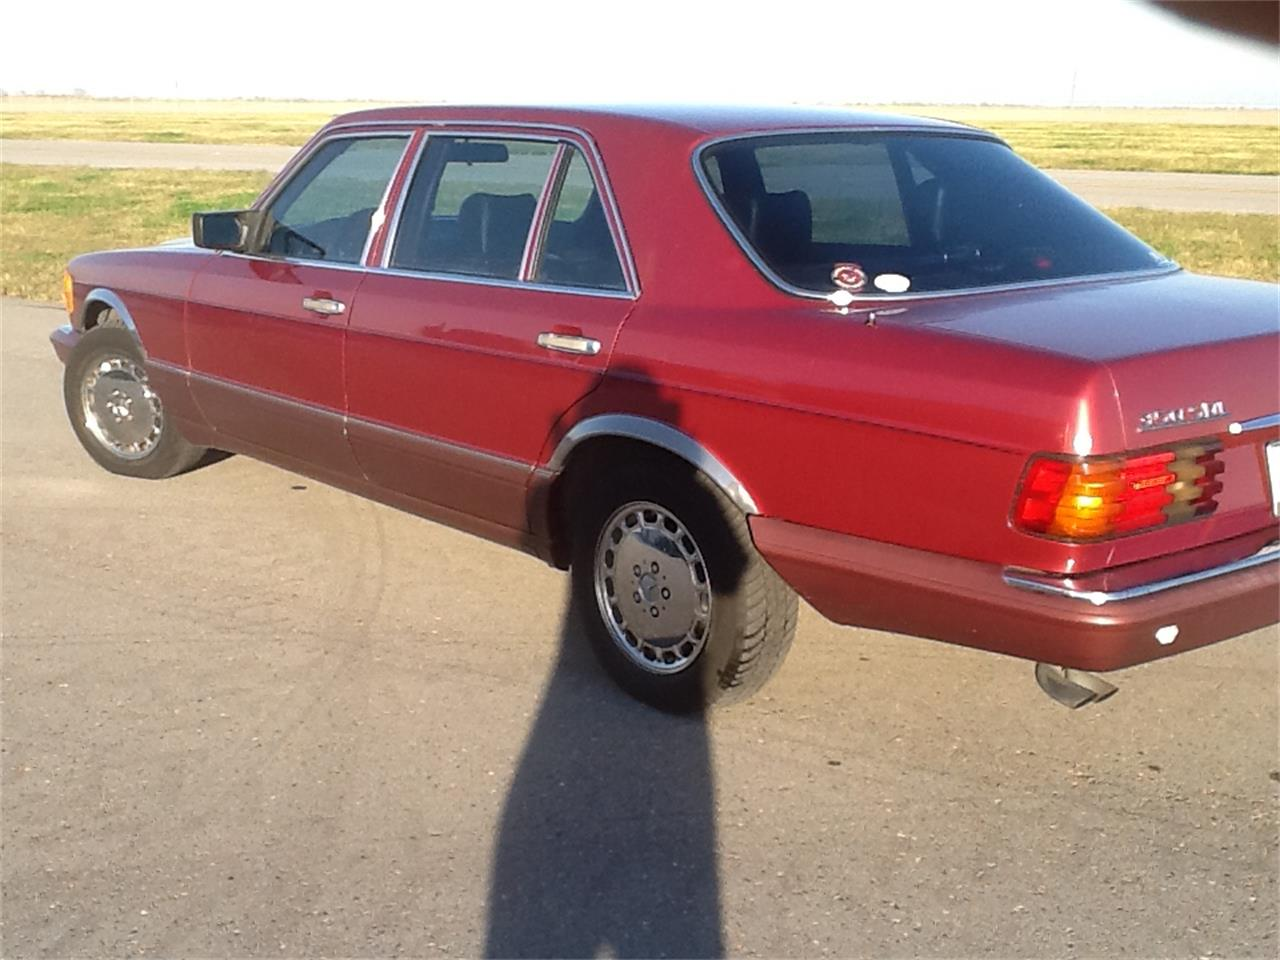 Large Picture of 1990 Mercedes-Benz 350SDL located in Harlingen Texas - $4,000.00 Offered by a Private Seller - GH74